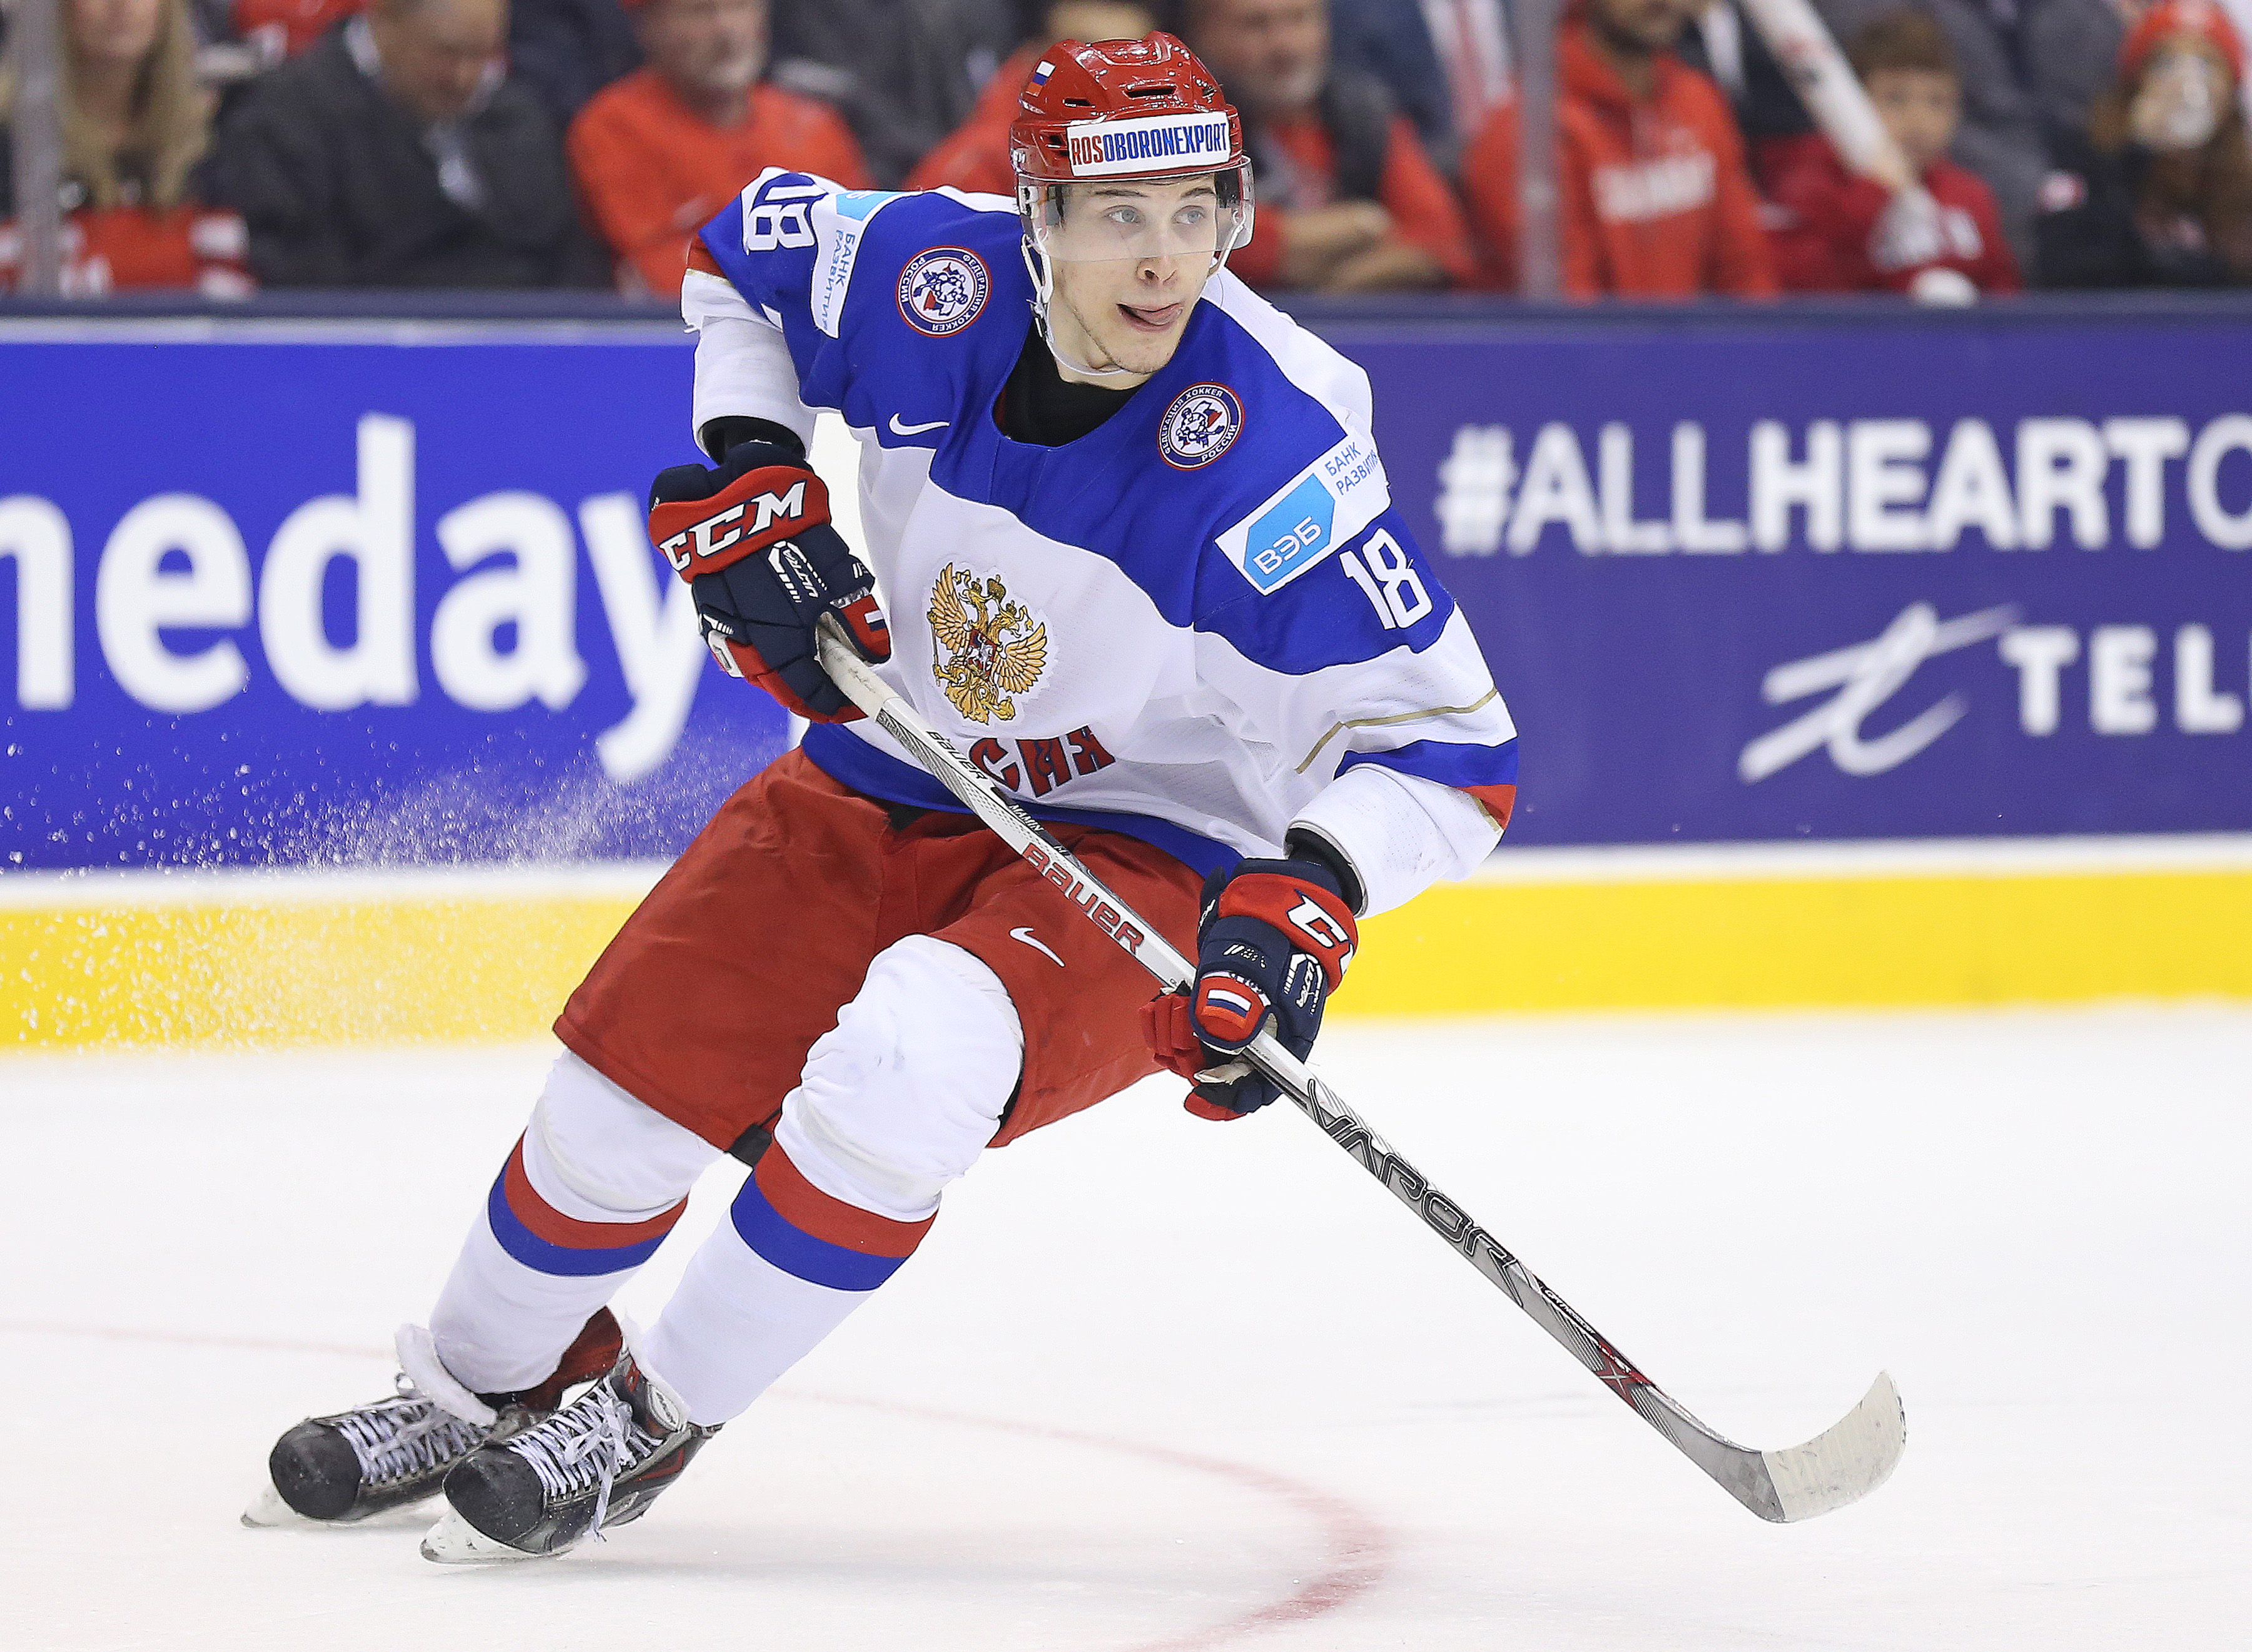 Maxim Maim played for Russia at the WJC.